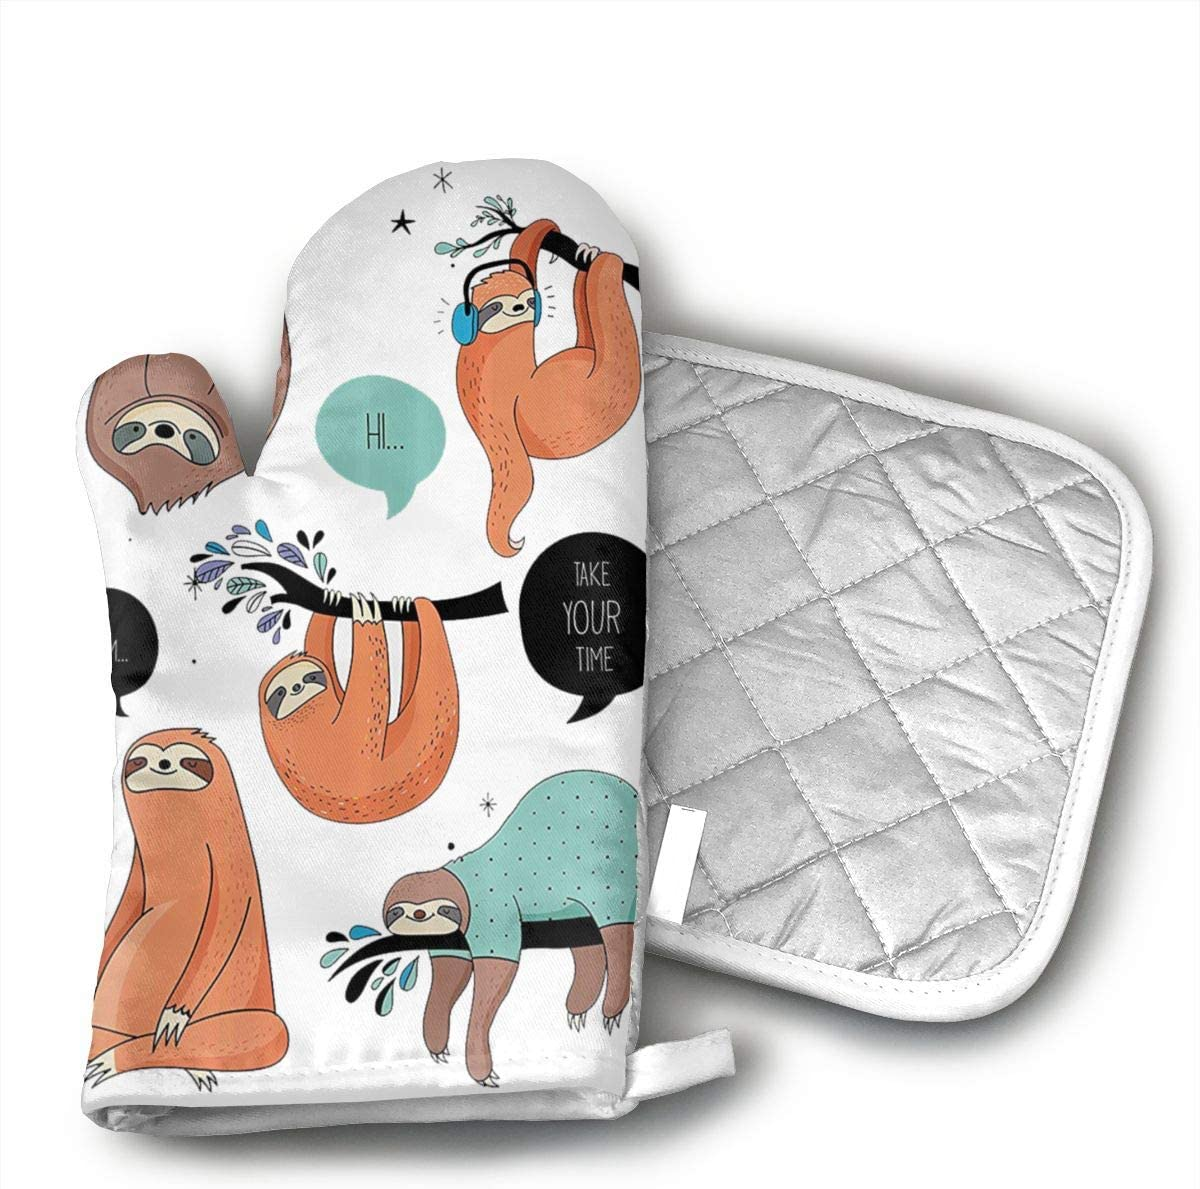 Wiqo9 Cartoon Illustration Tribe of Sloths Smiles Oven Mitts and Pot Holders Kitchen Mitten Cooking Gloves,Cooking, Baking, BBQ.